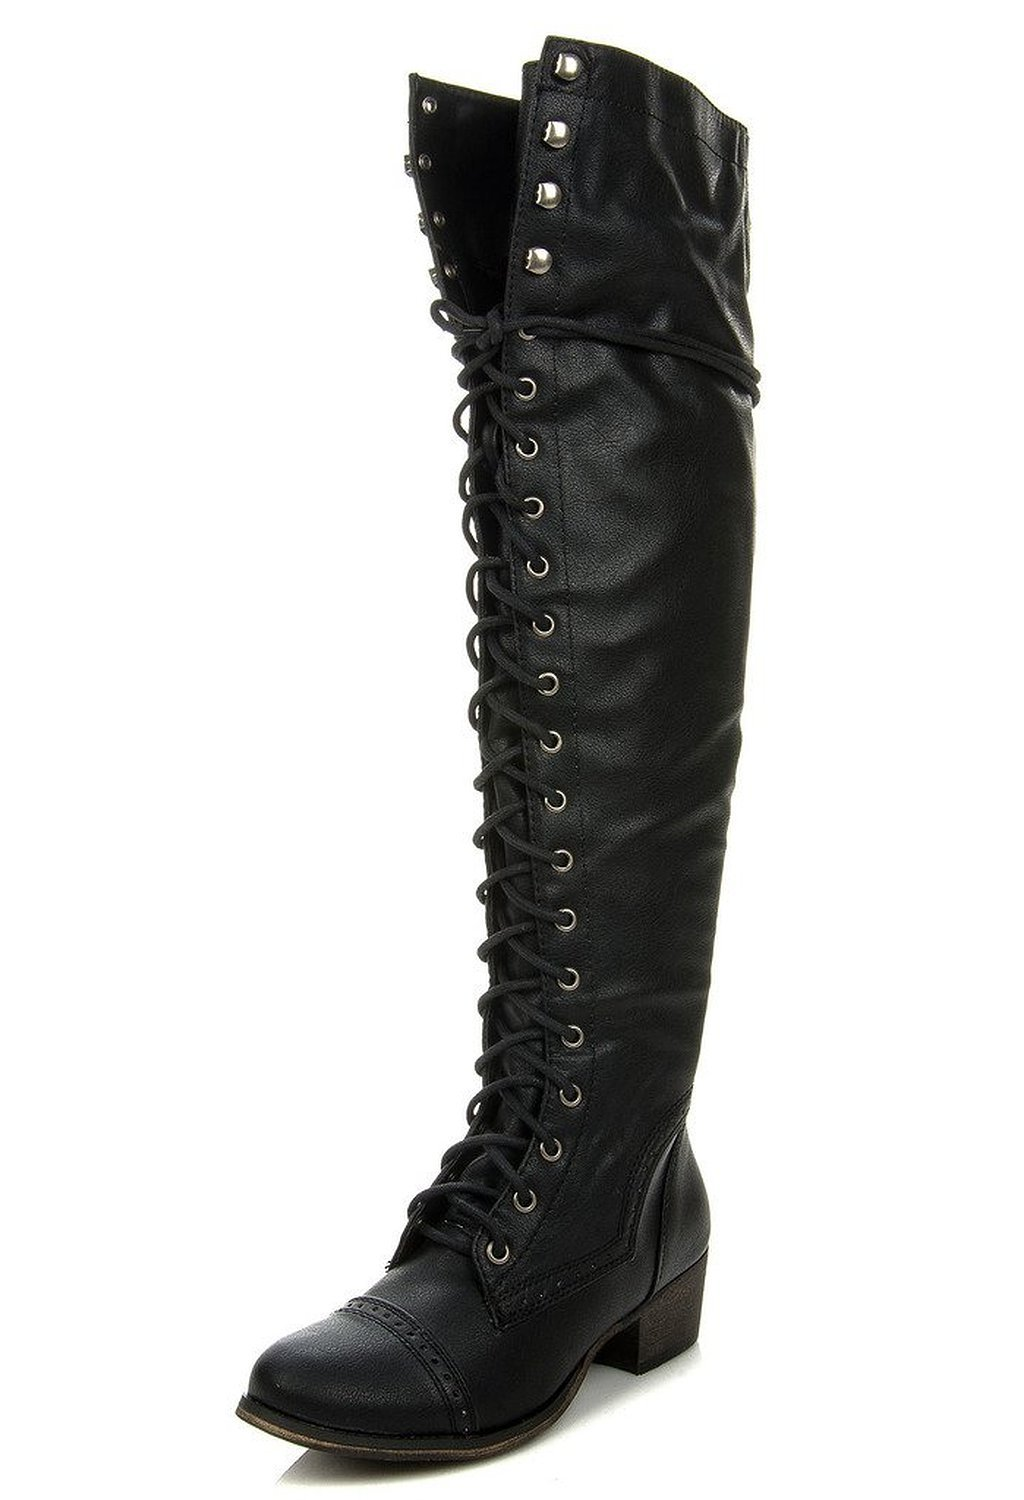 Breckelle's ALABAMA-12 Women's Knee High Riding Boots